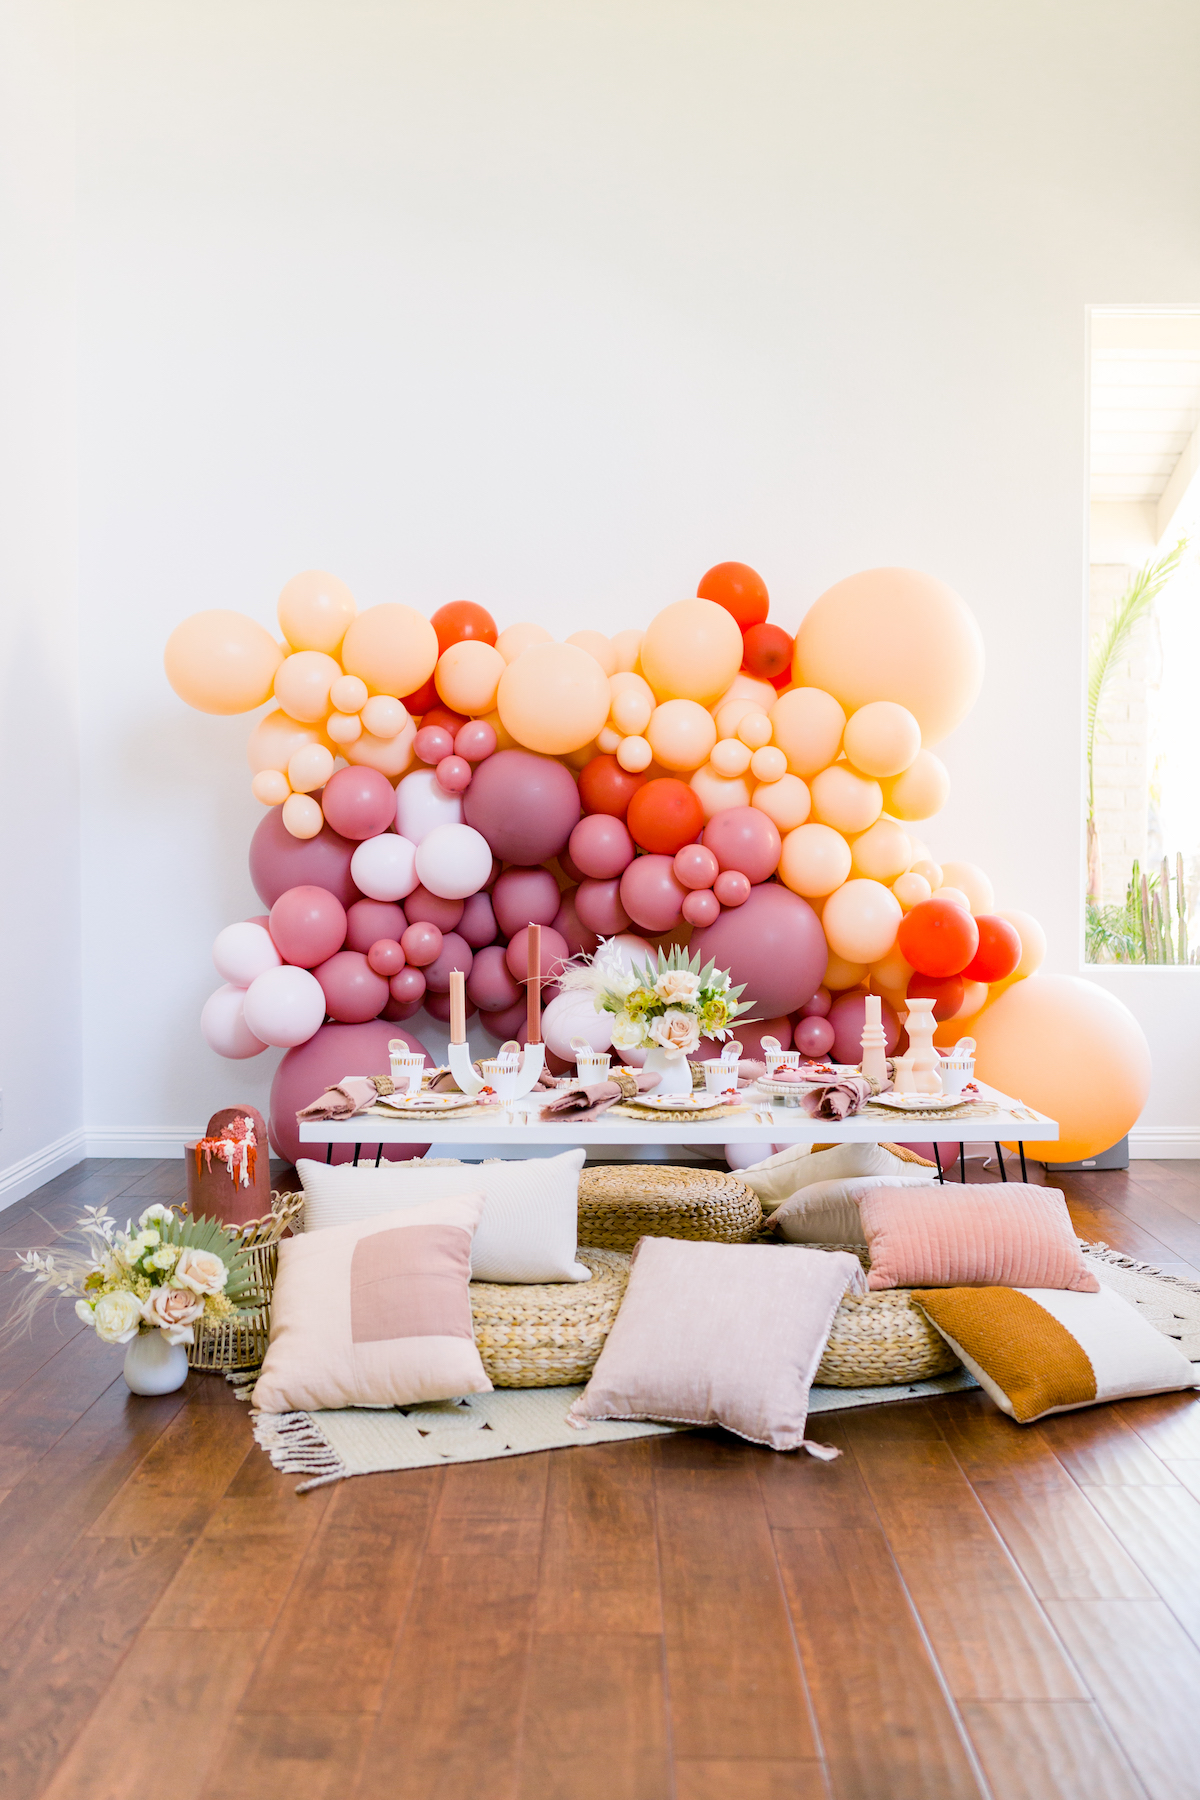 Golden Arrow Events & Design - Chasing Rainbows Birthday